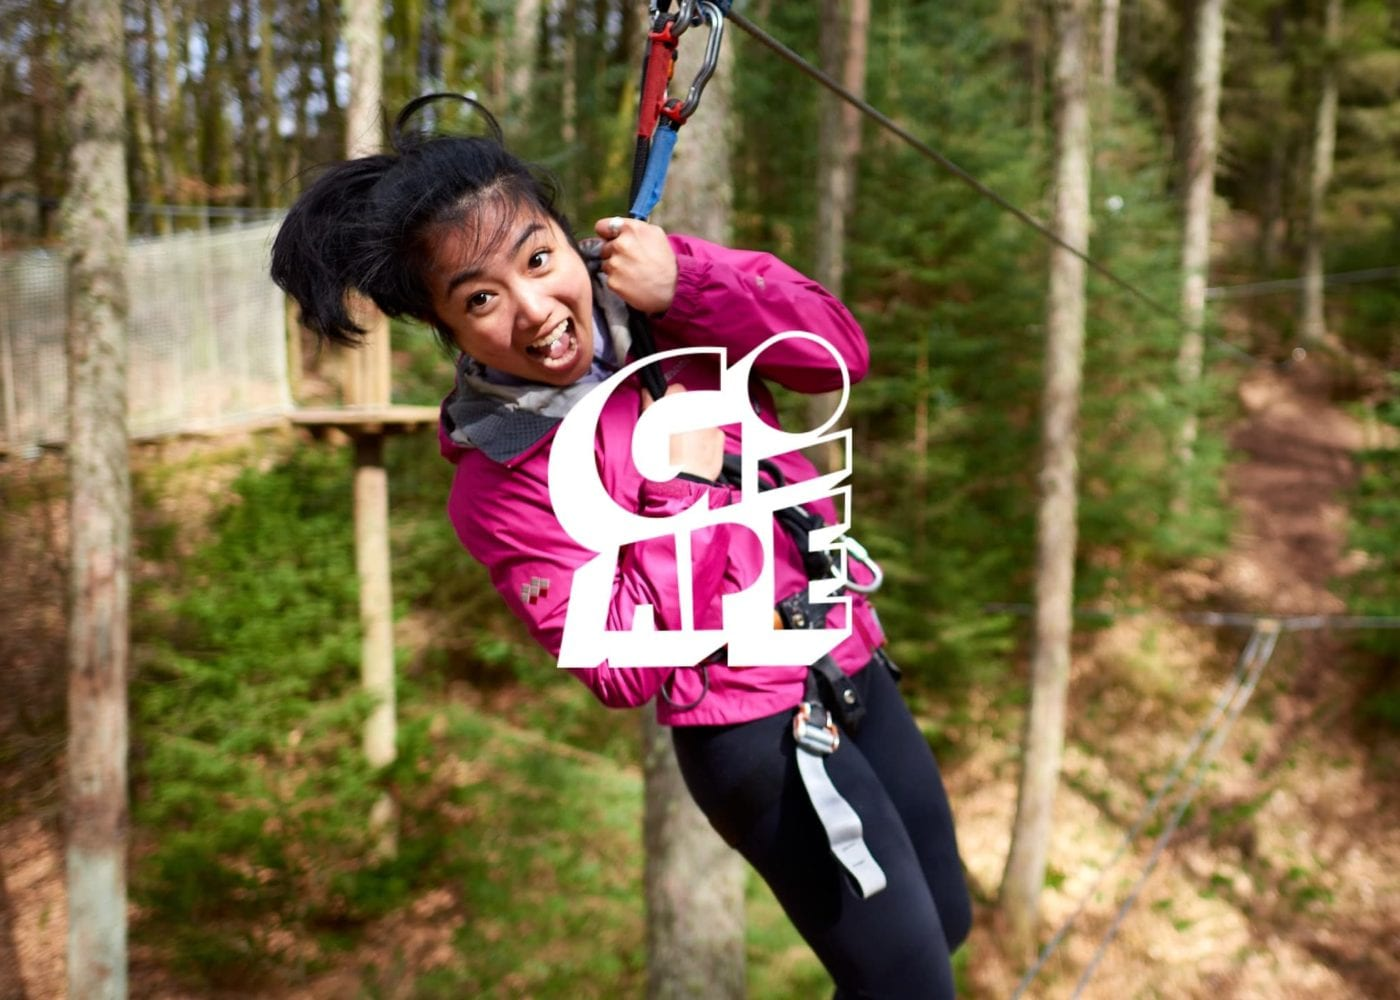 Go Ape corporate at Coombe Abbey